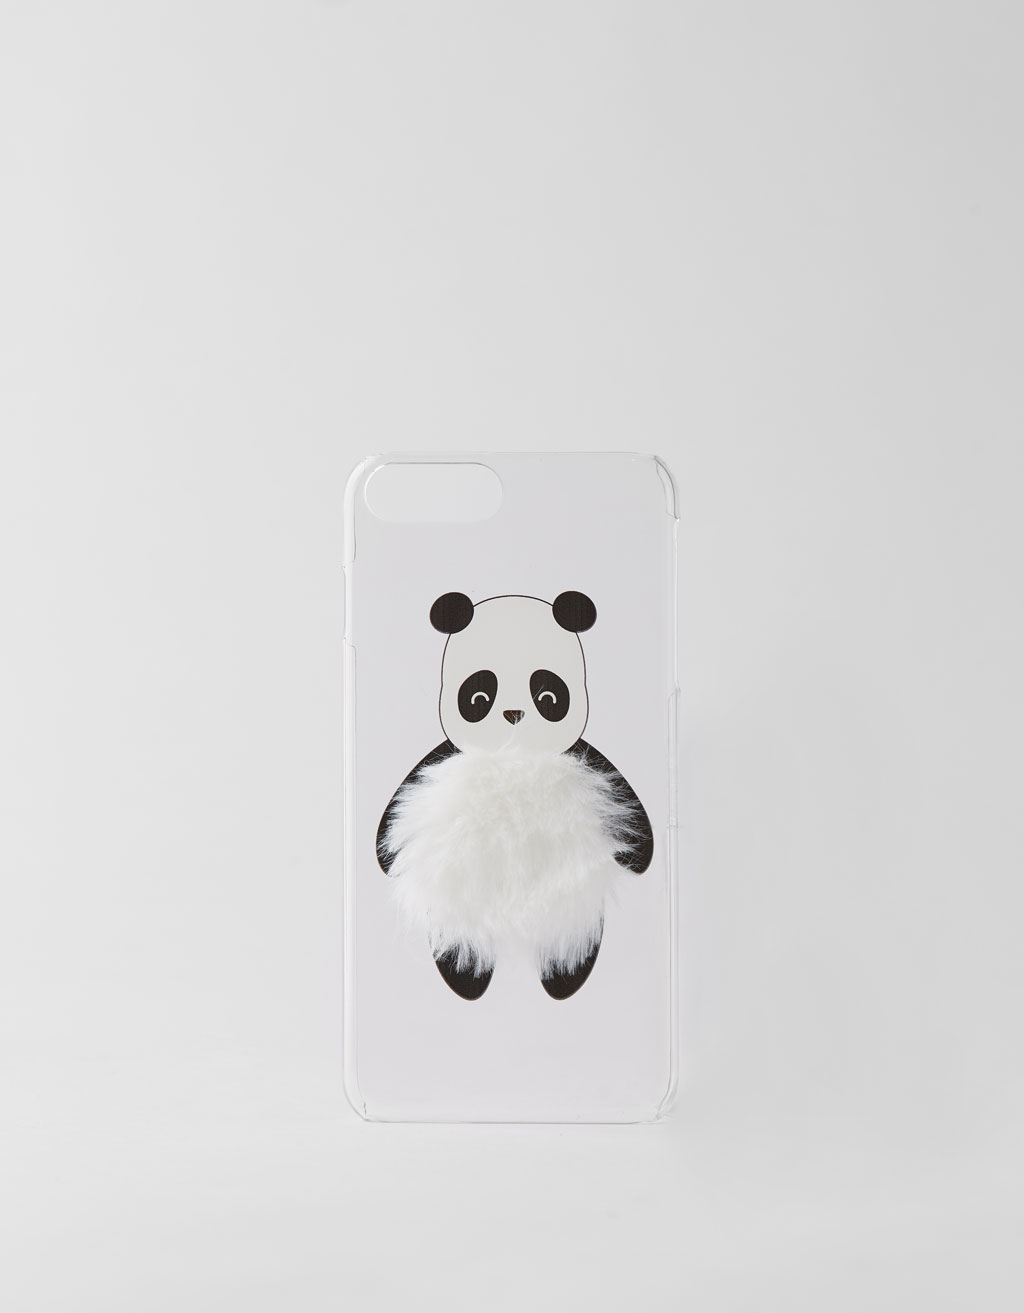 Coque panda iPhone 6 plus / 7 plus / 8 plus